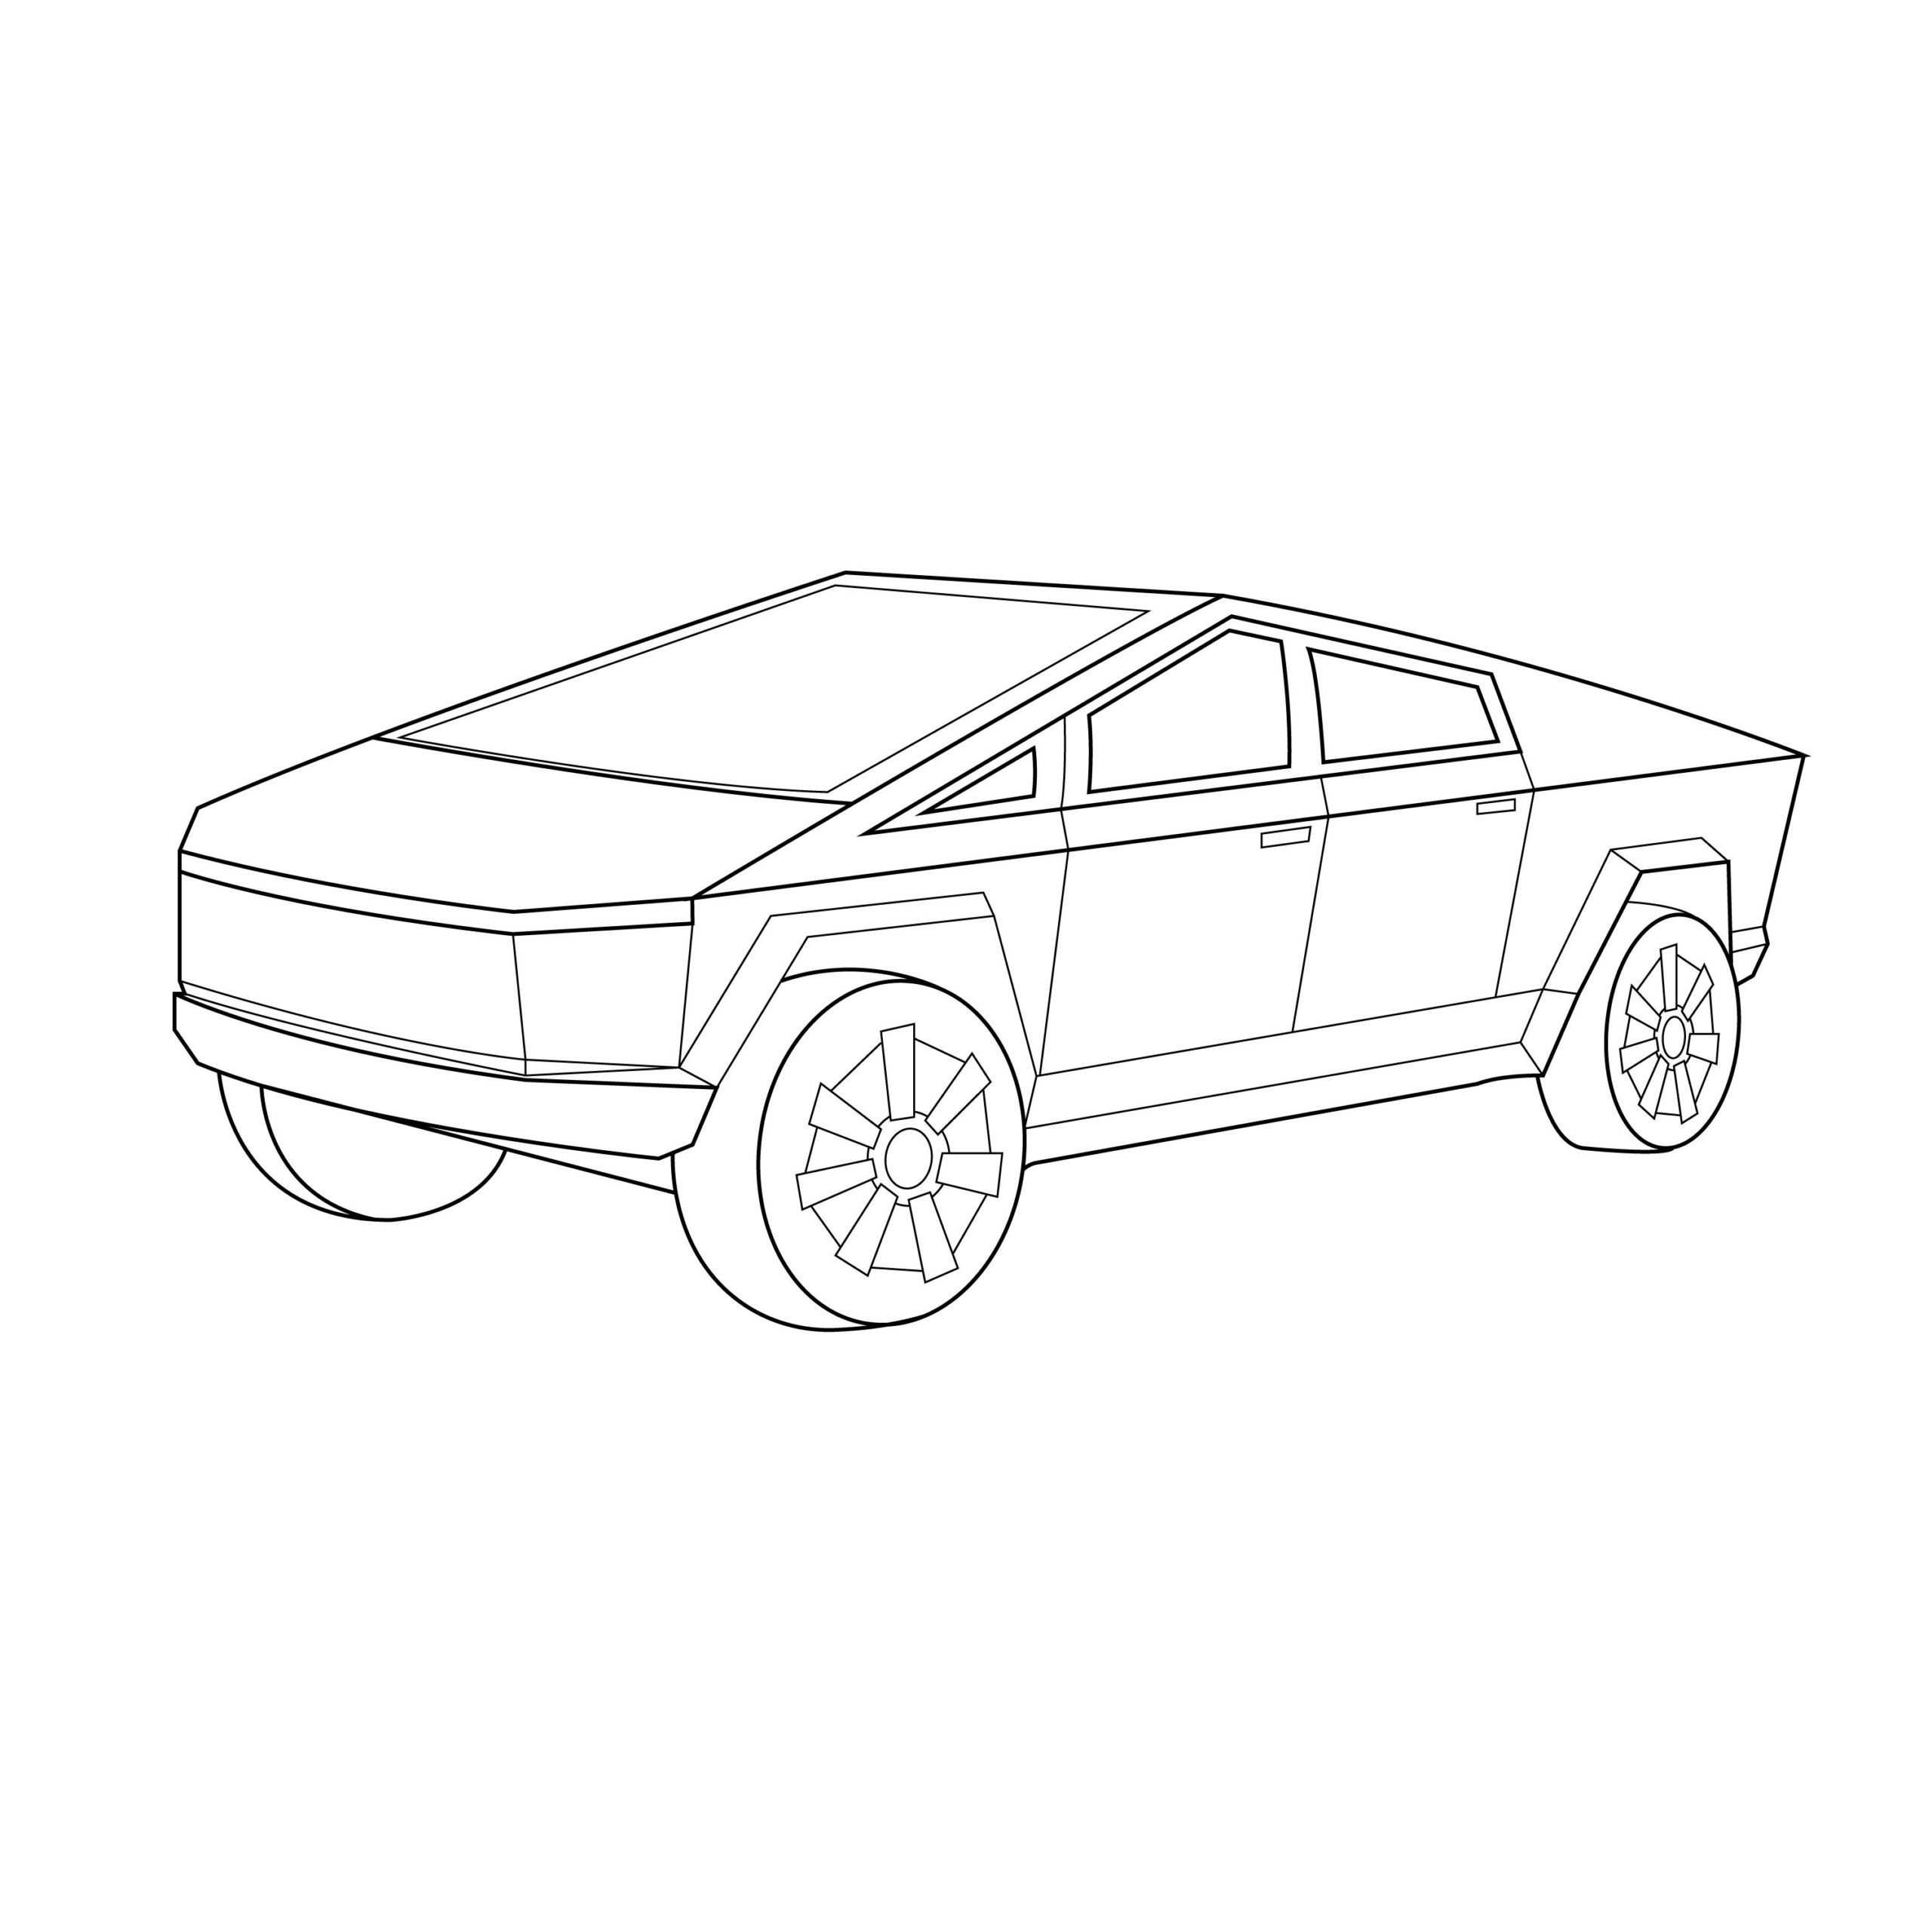 Line Drawing Of The Tesla Cybertruck In 2020 Line Drawing